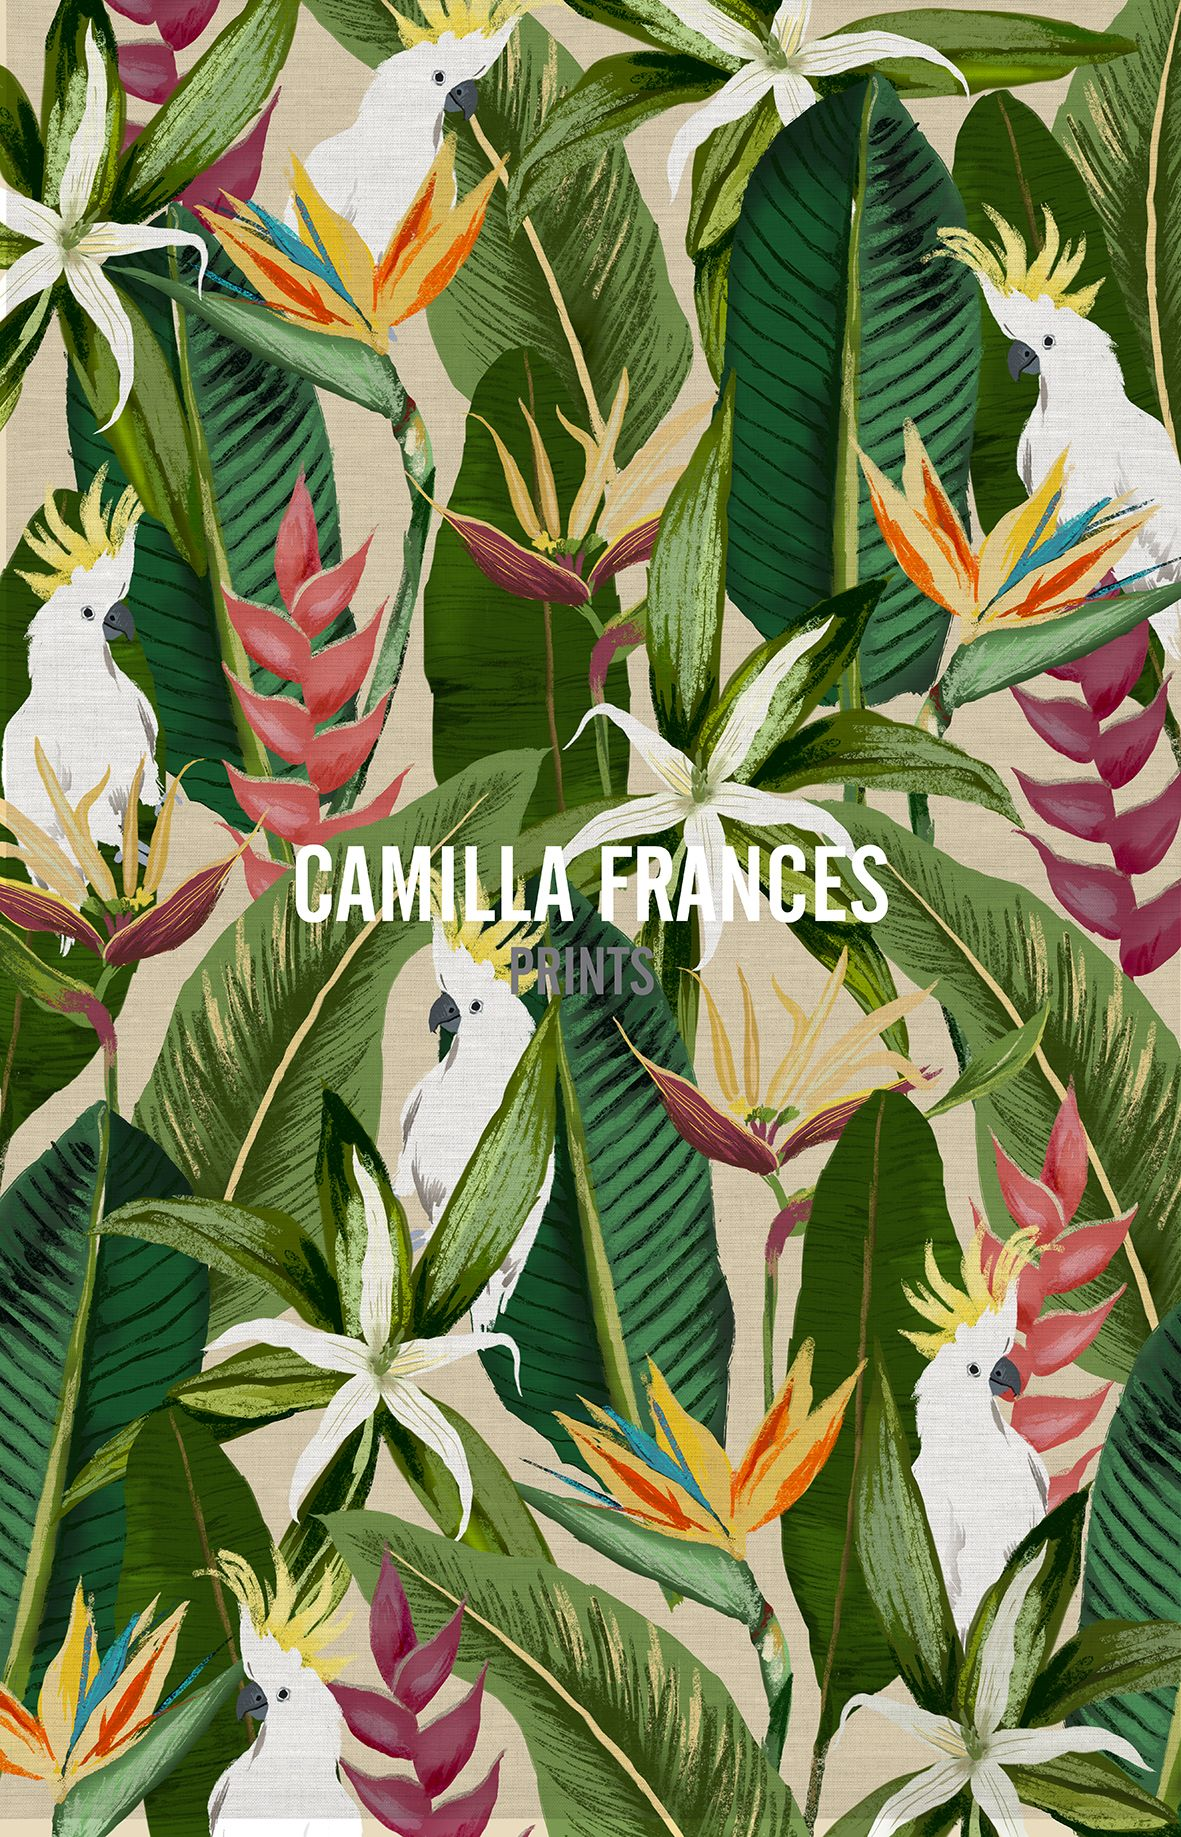 Tropical camilla frances prints i love it for Childrens jungle print fabric